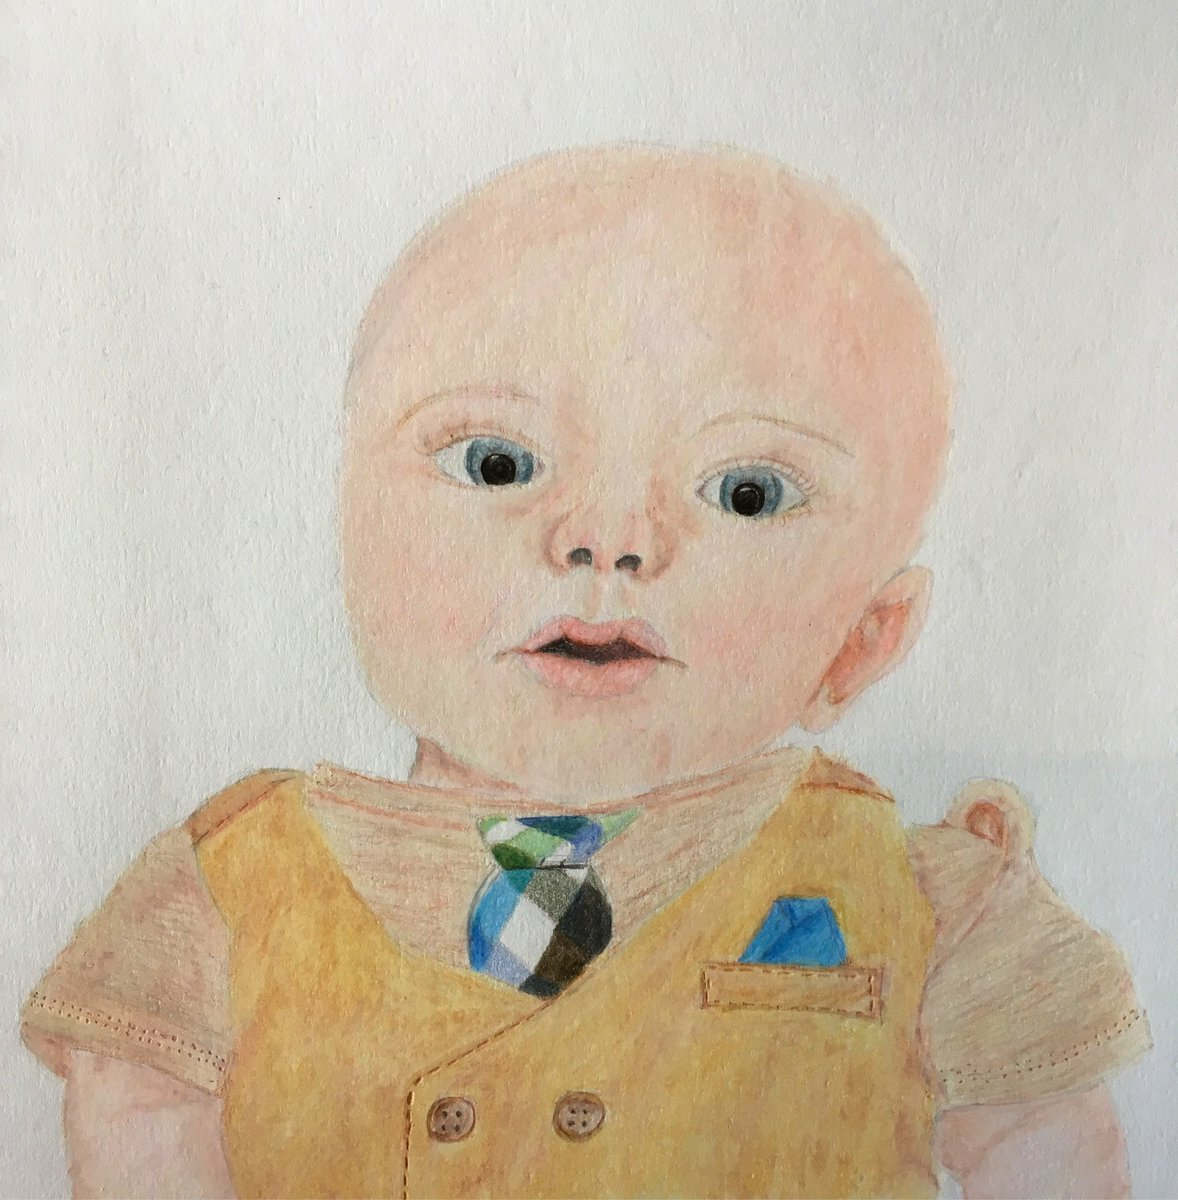 Family Fun Pack On Twitter FFPFanArtFriday This Is An AMAZING Drawing Of Owen Thanks To Lucy Age 15 For Sharing 3